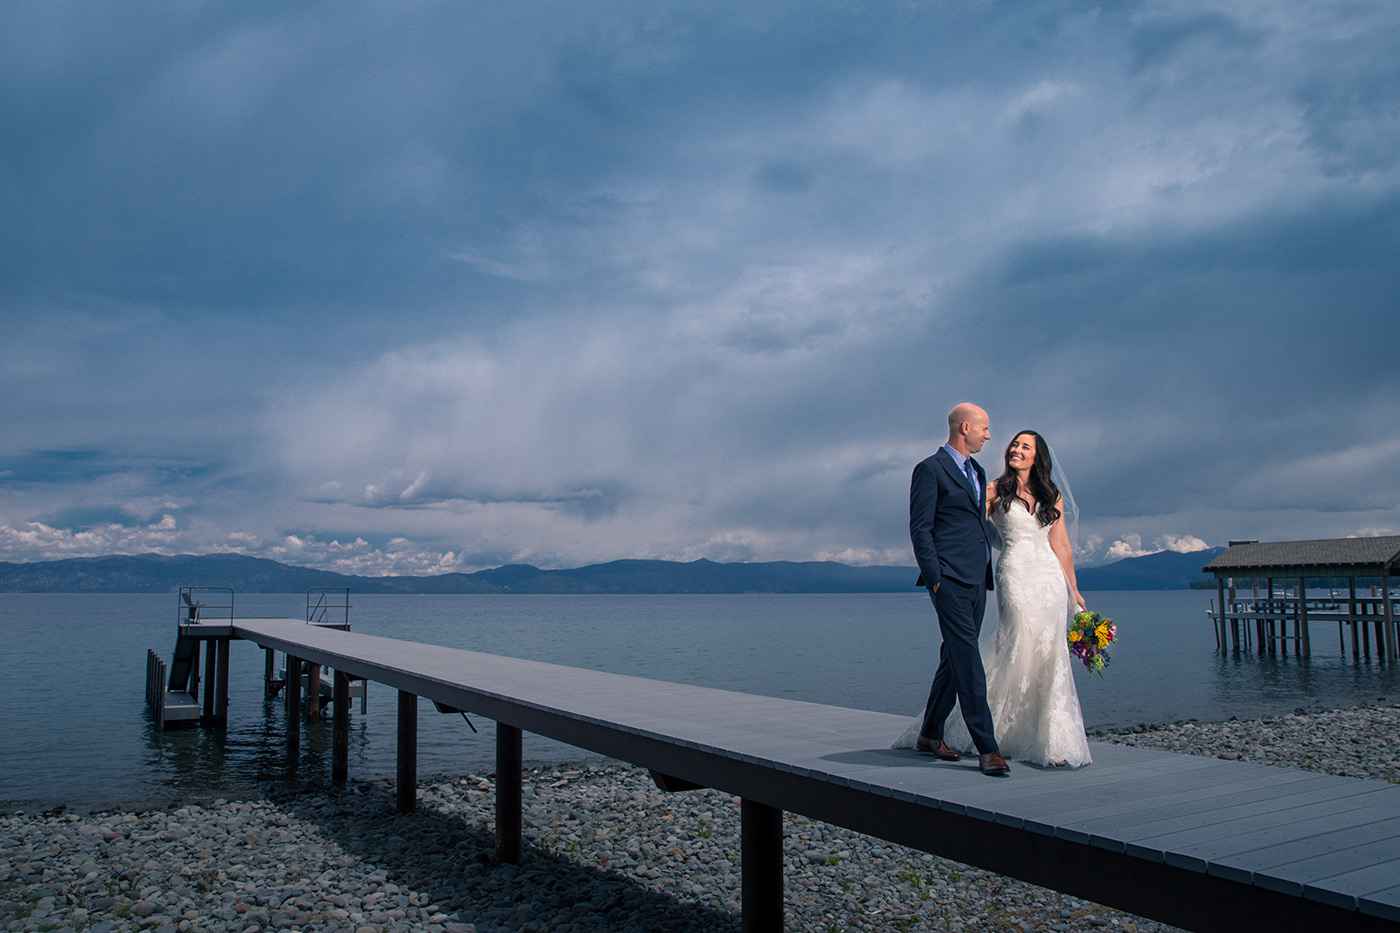 tahoe-lake-wedding